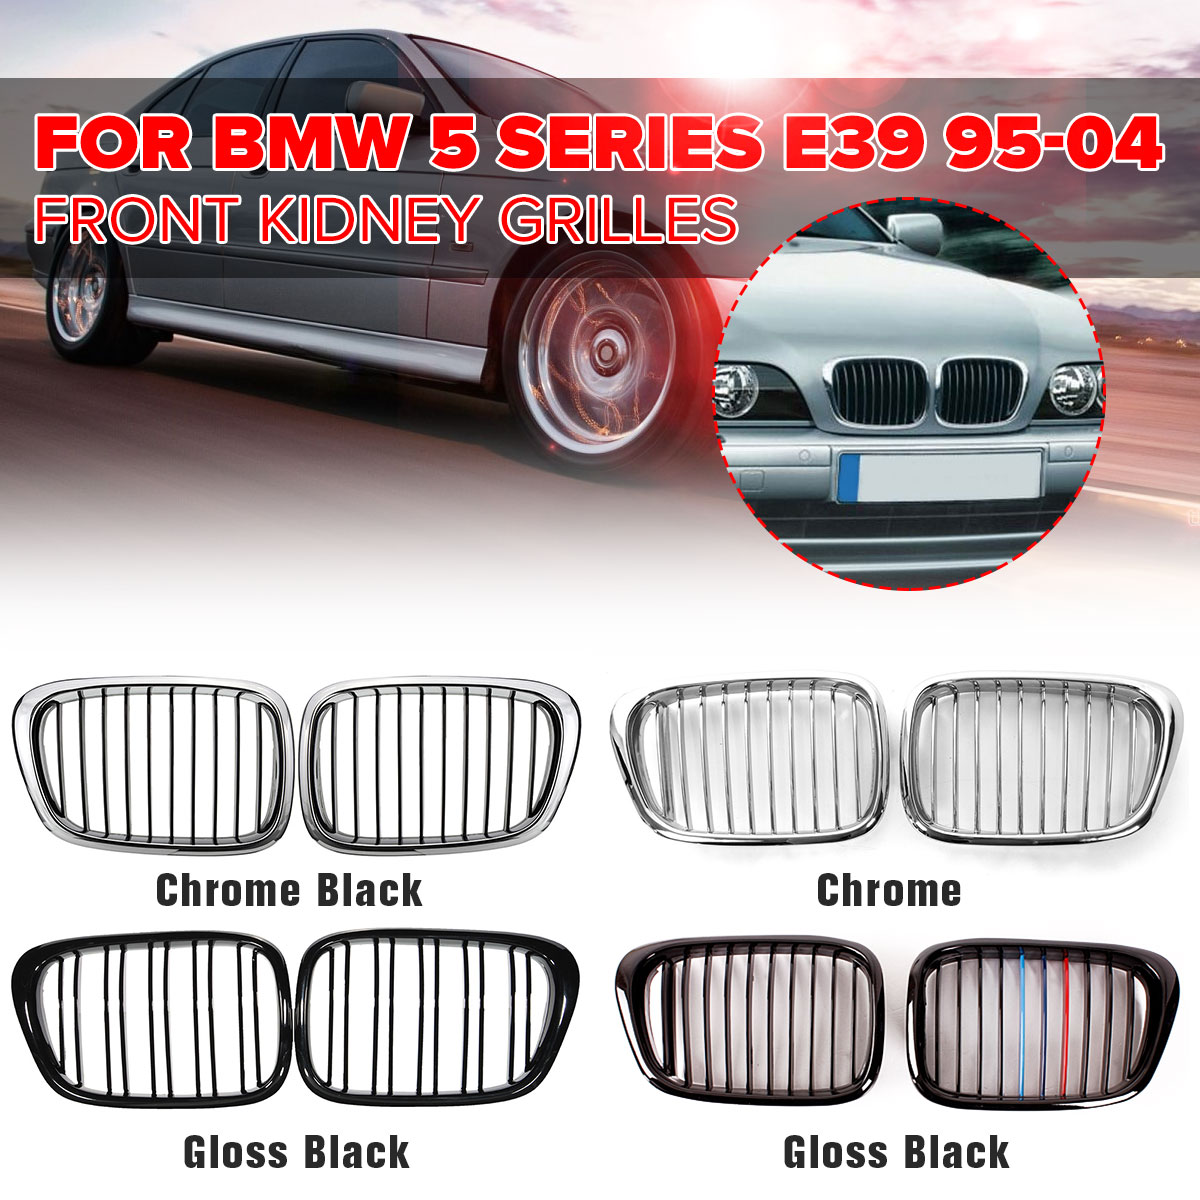 Pair Chrome Black/Gloss Black Front Kidney Grille Grilles For BMW E39 M5 5-series 525i 528i 530i 1997-2003 Car Accessories PartPair Chrome Black/Gloss Black Front Kidney Grille Grilles For BMW E39 M5 5-series 525i 528i 530i 1997-2003 Car Accessories Part